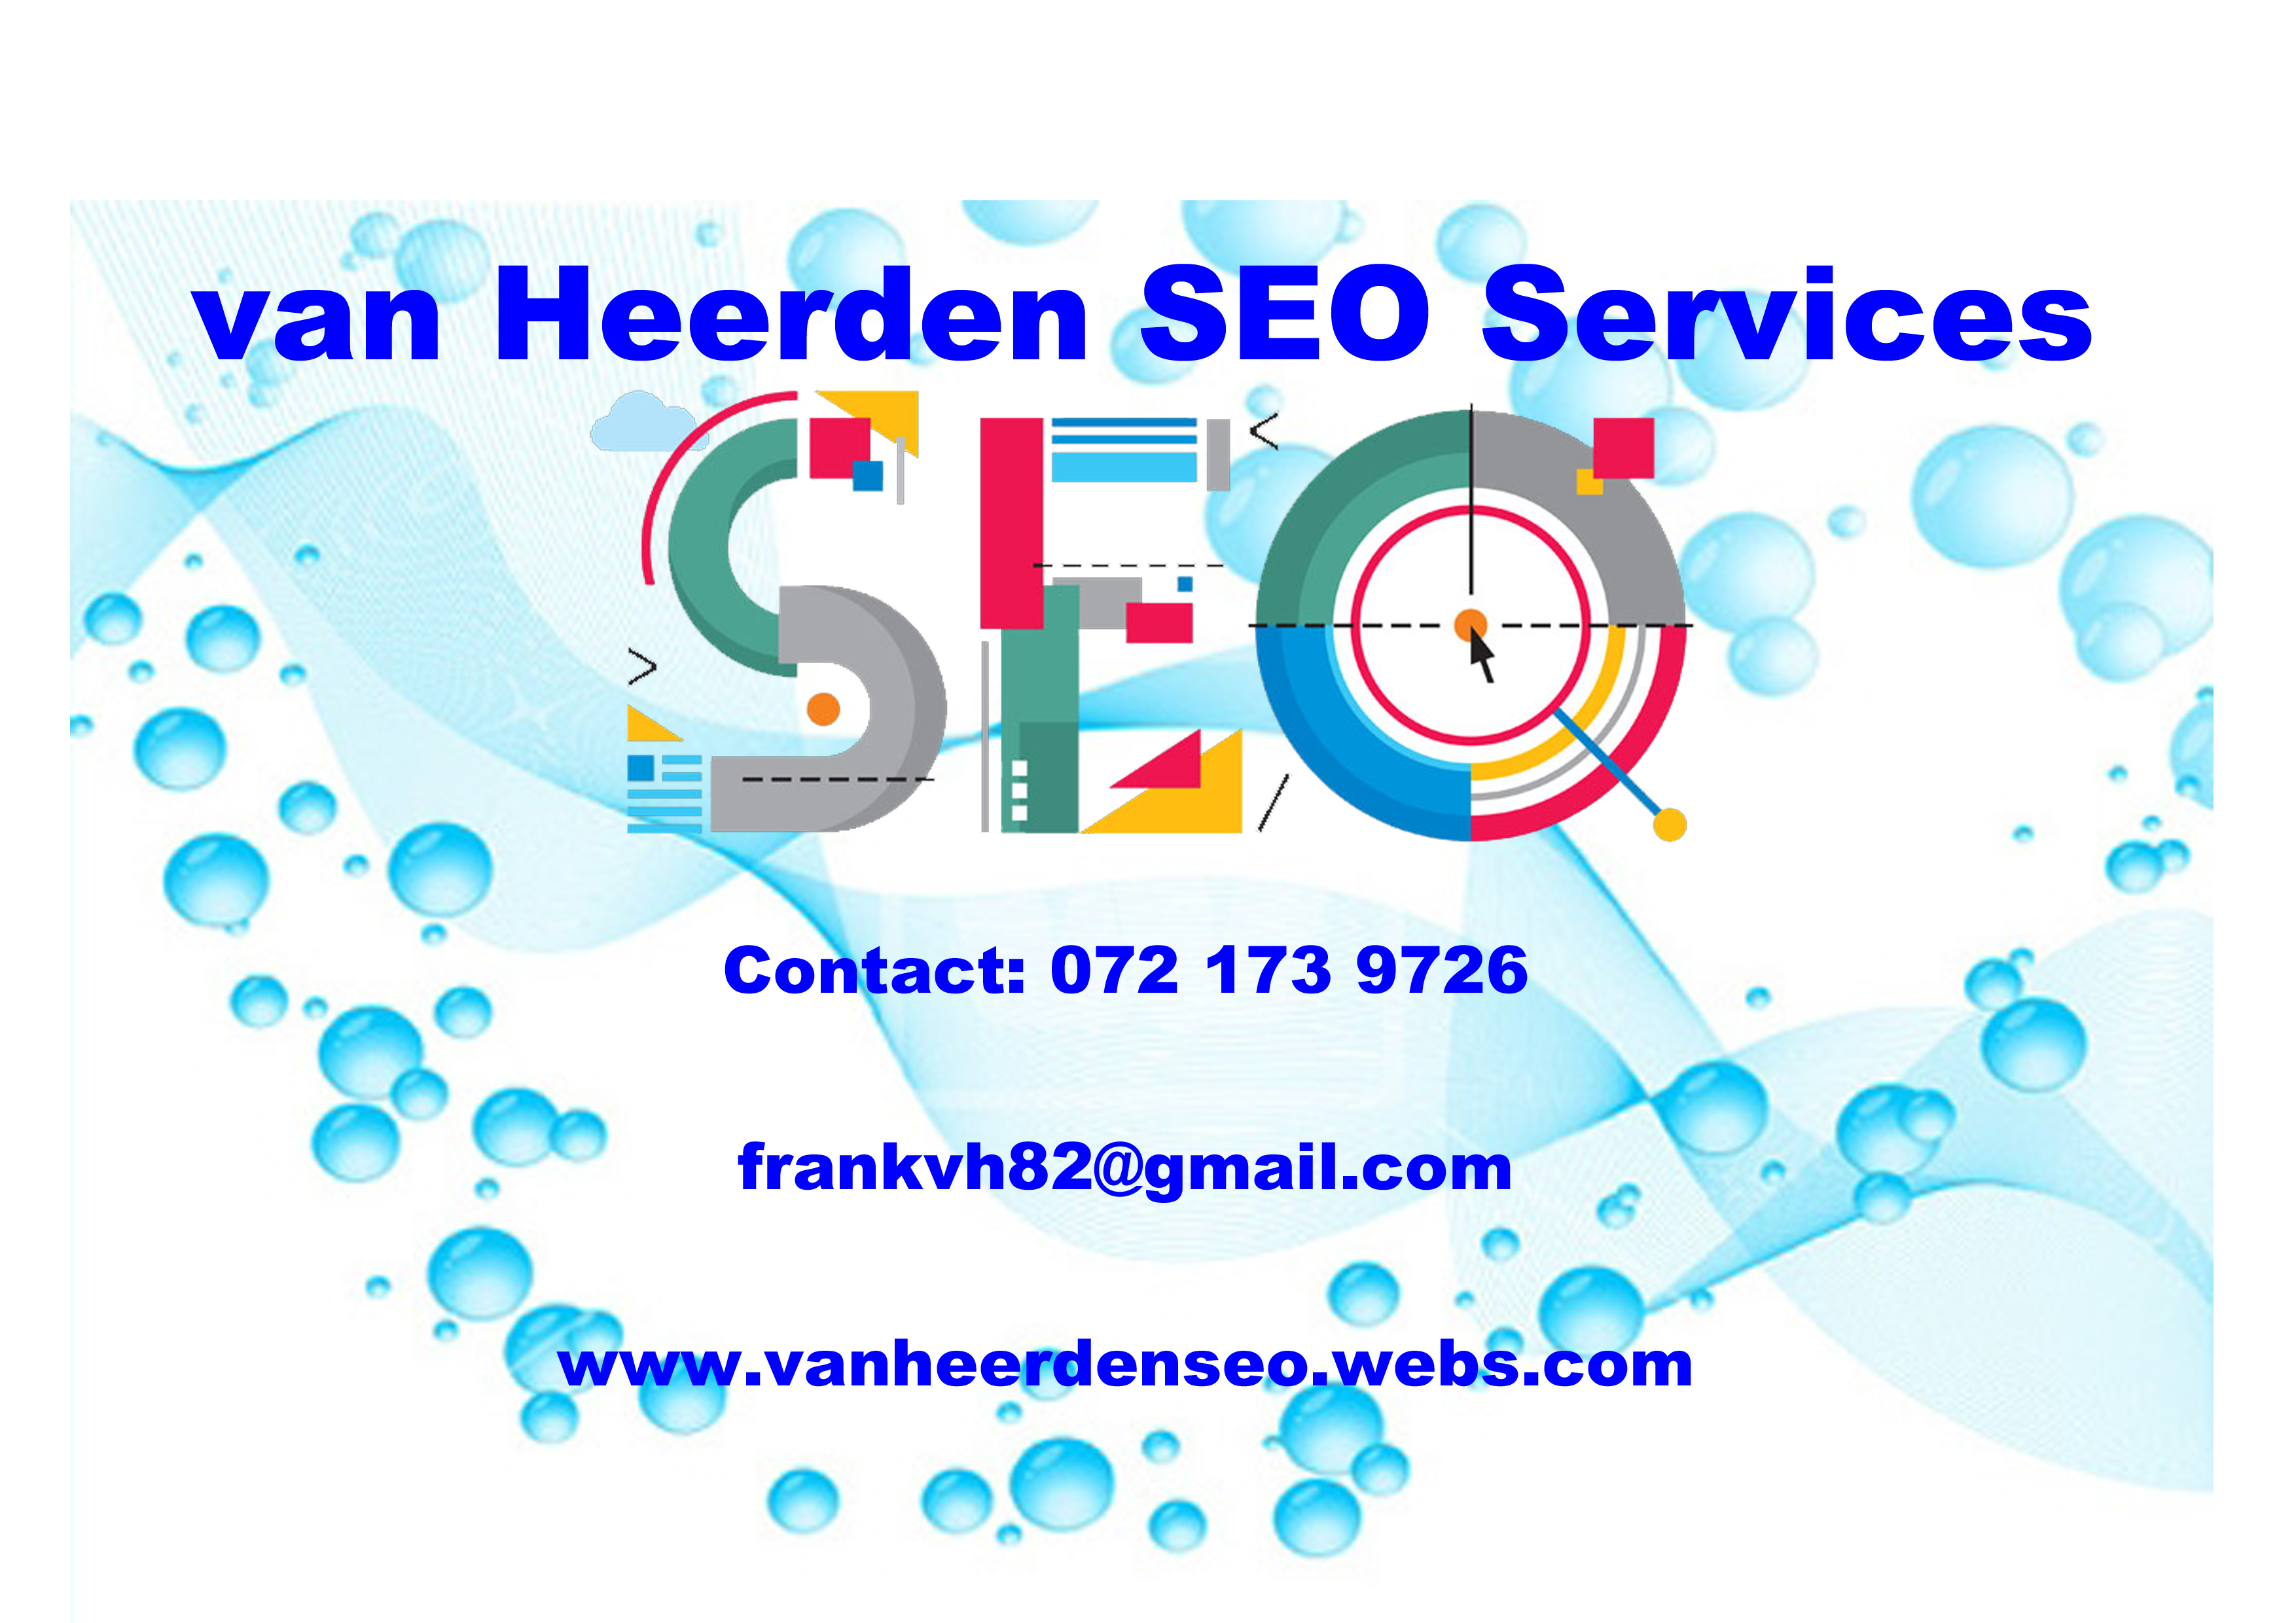 Van Heerden SEO Services - Christian Business Network South Africa Directory